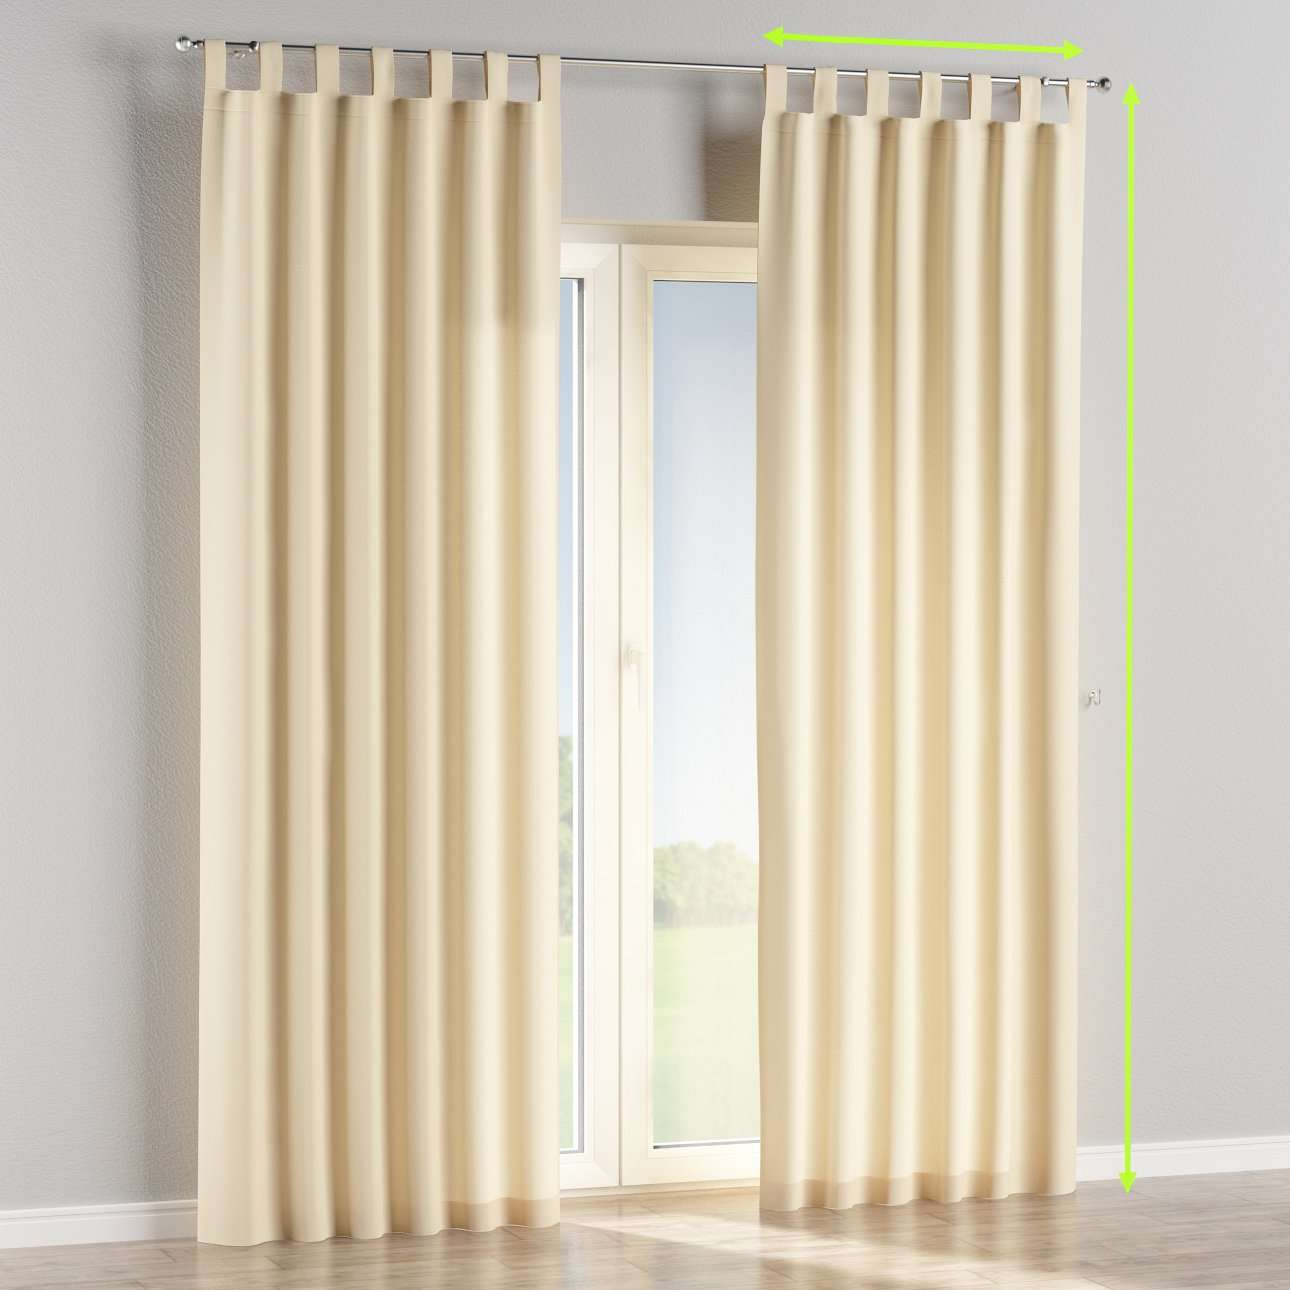 Tab top lined curtains in collection Cotton Panama, fabric: 702-29